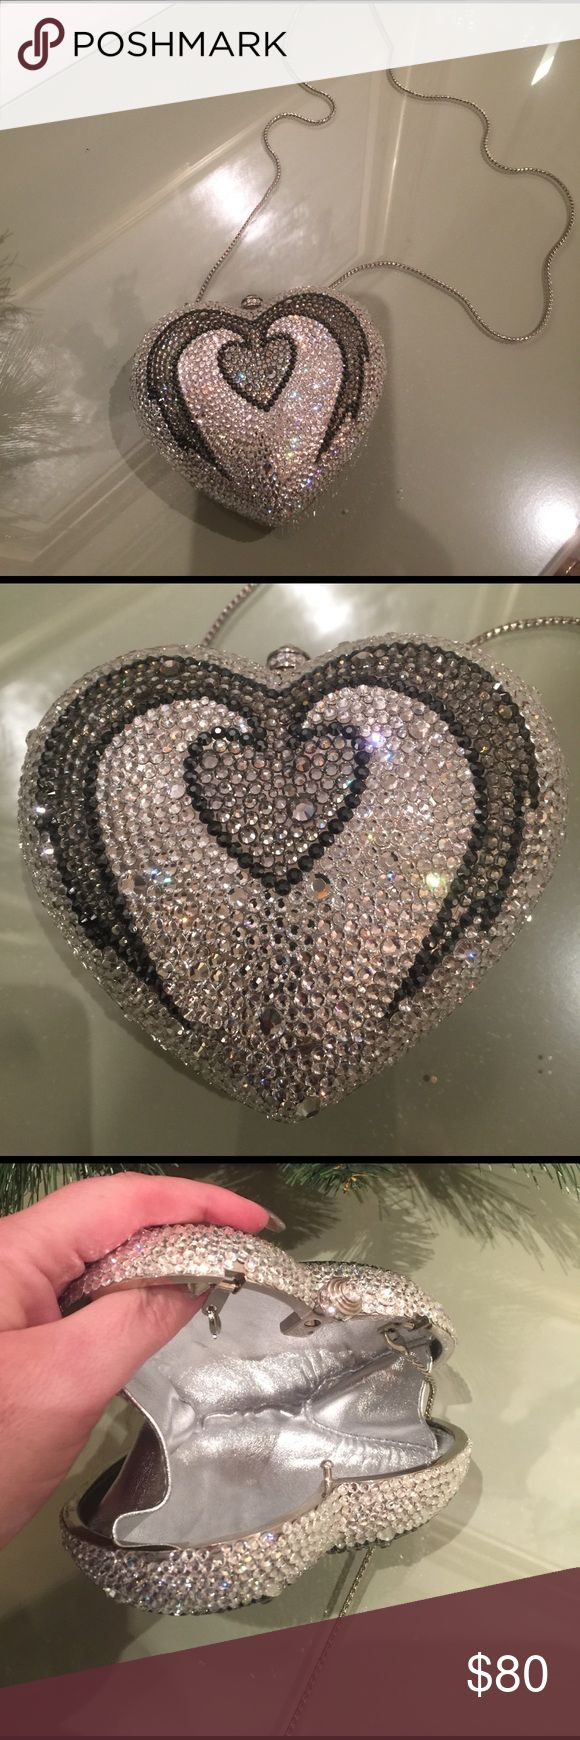 Heart Shaped Crystal Sparkler Evening Described in photos above, no crystals missing.  Can be used as clutch or shoulder.  Perfect for weddings, proms, or just an evening out dancing. Bags